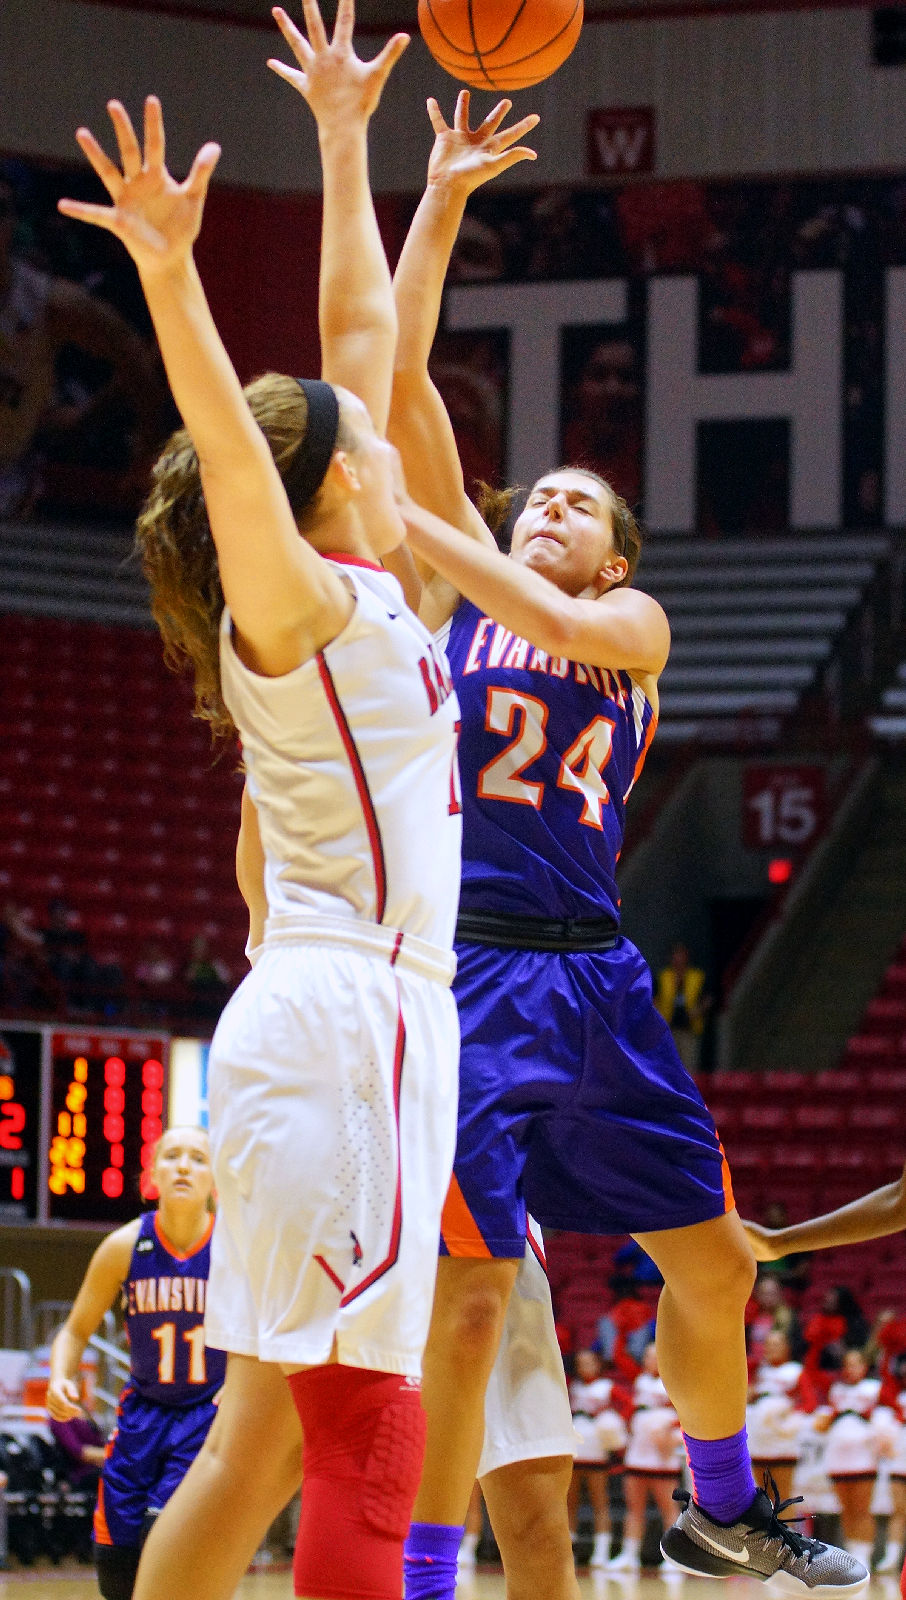 basketball ball vs ncaa state evansville womens sports arena indiana magazine comments muncie